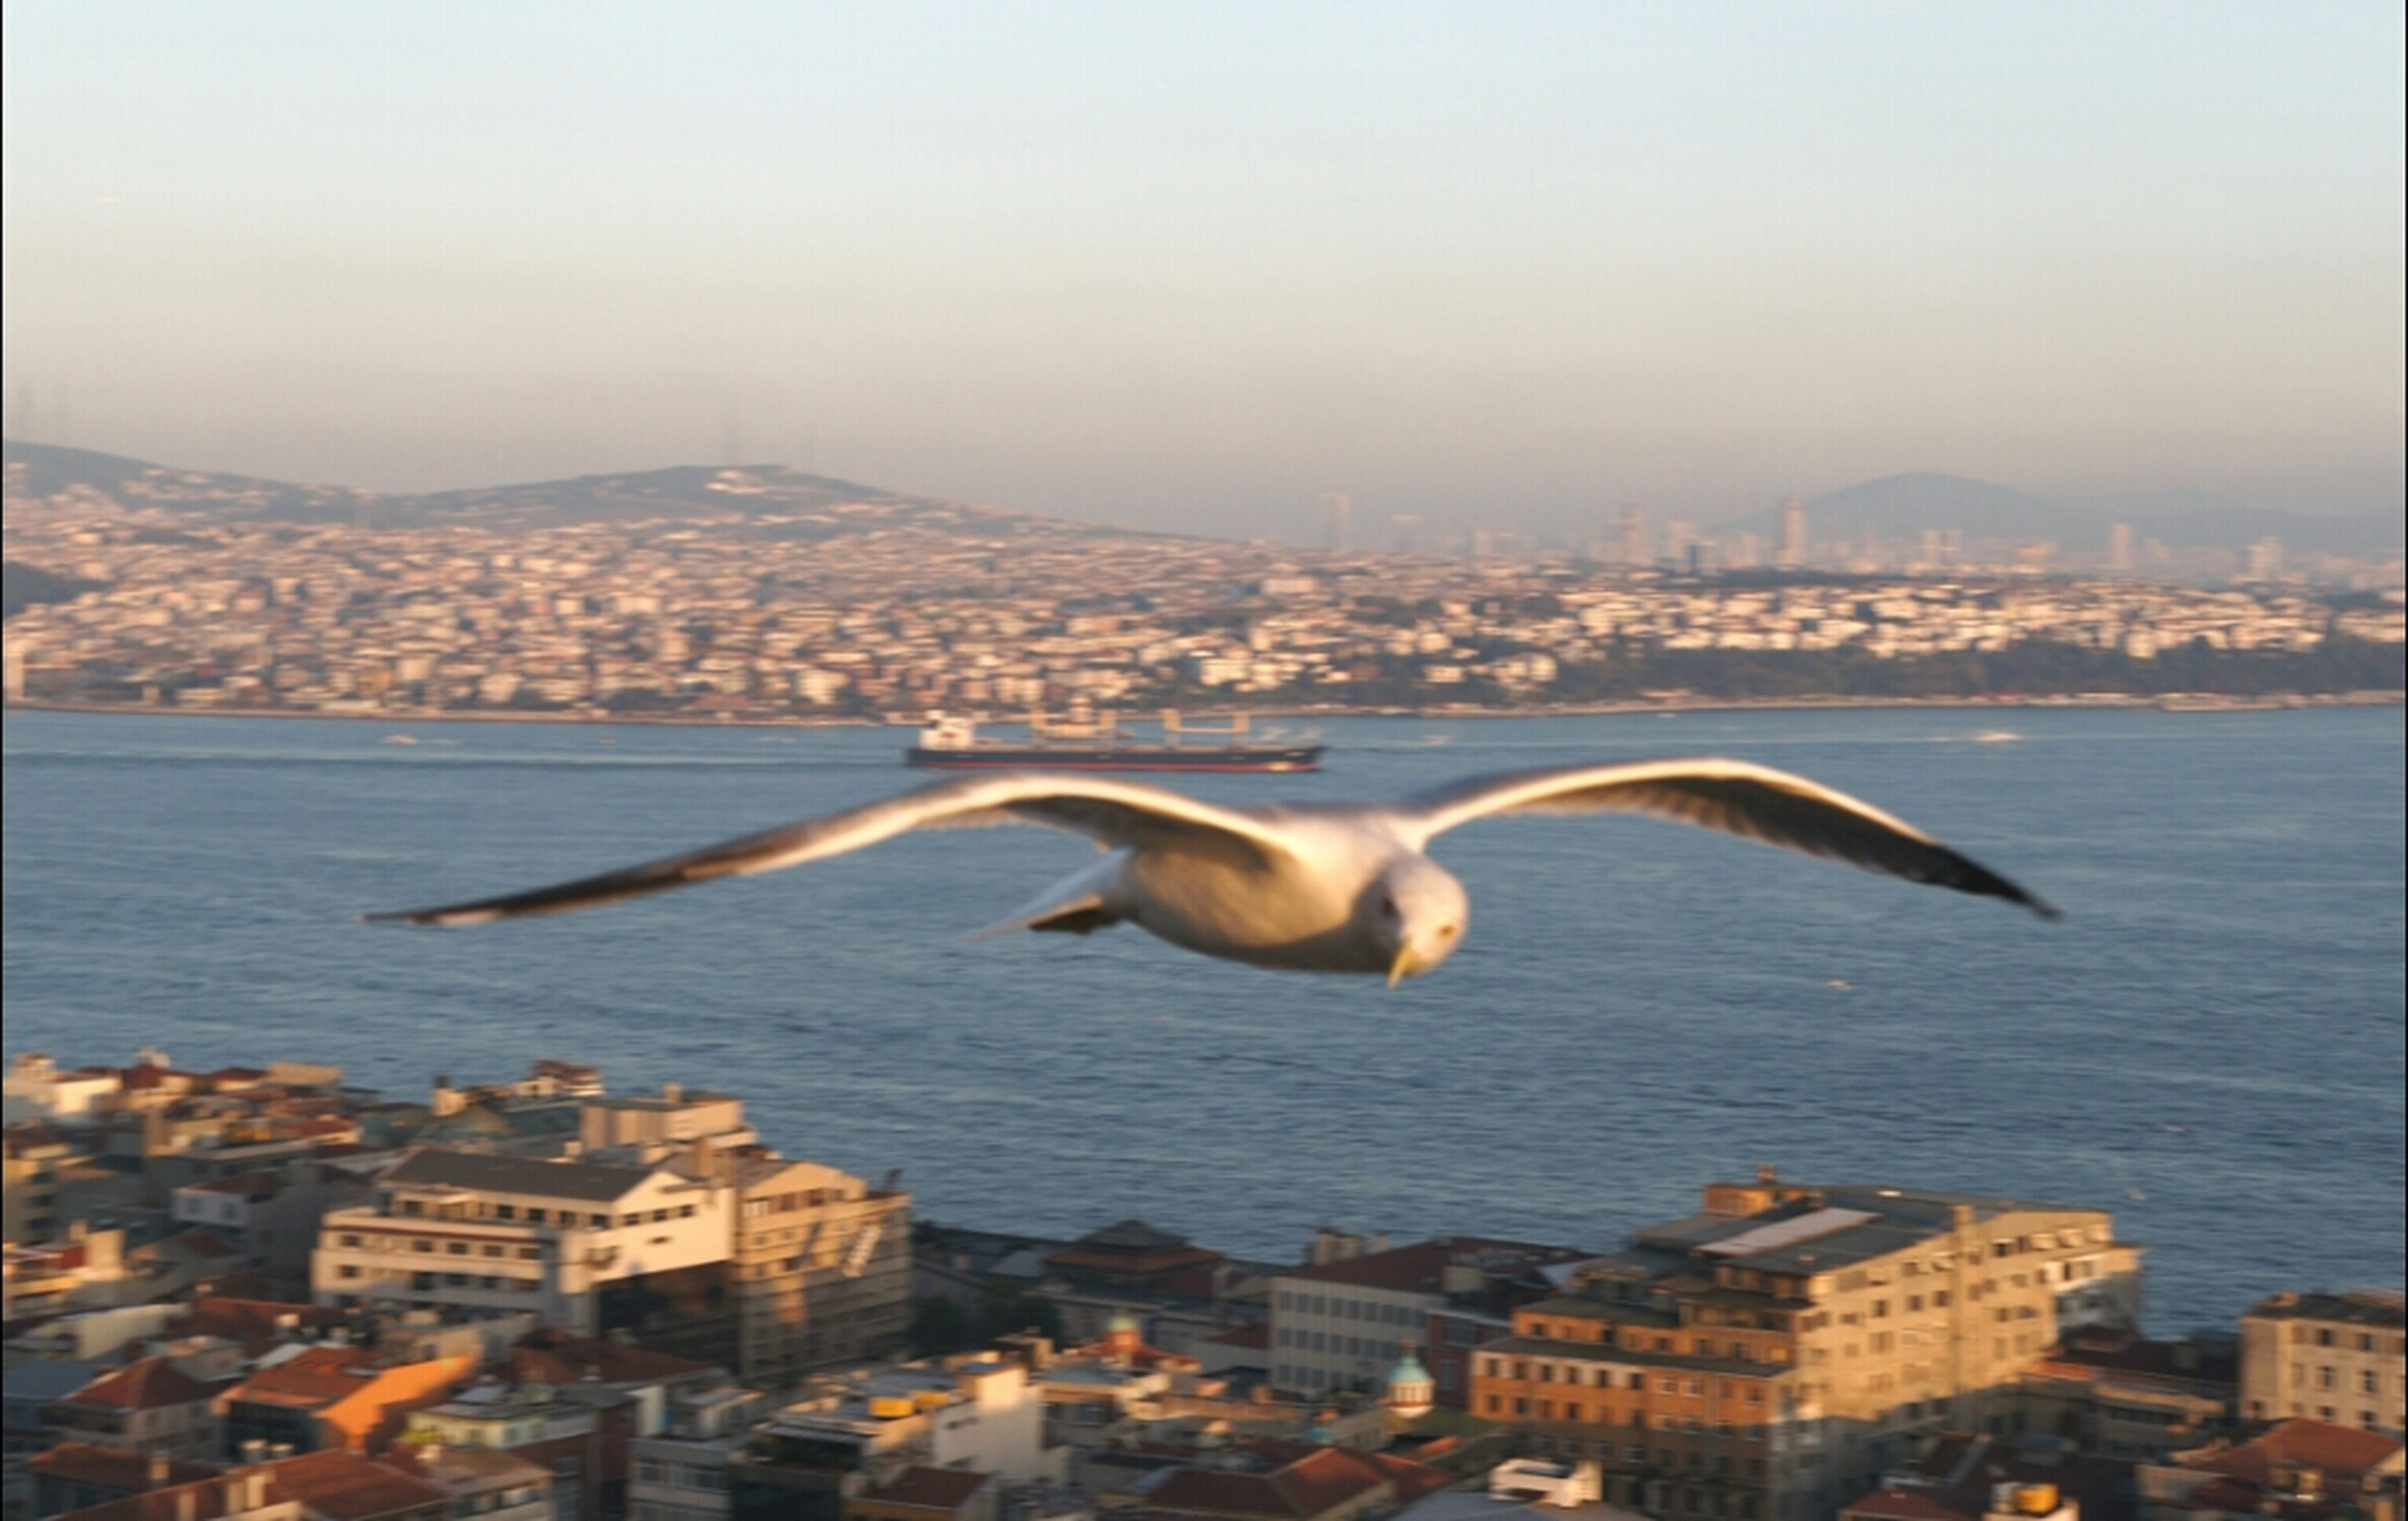 architecture, city, cityscape, built structure, bird, building exterior, flying, water, animal themes, sea, clear sky, seagull, animals in the wild, river, transportation, wildlife, copy space, mid-air, mountain, sky